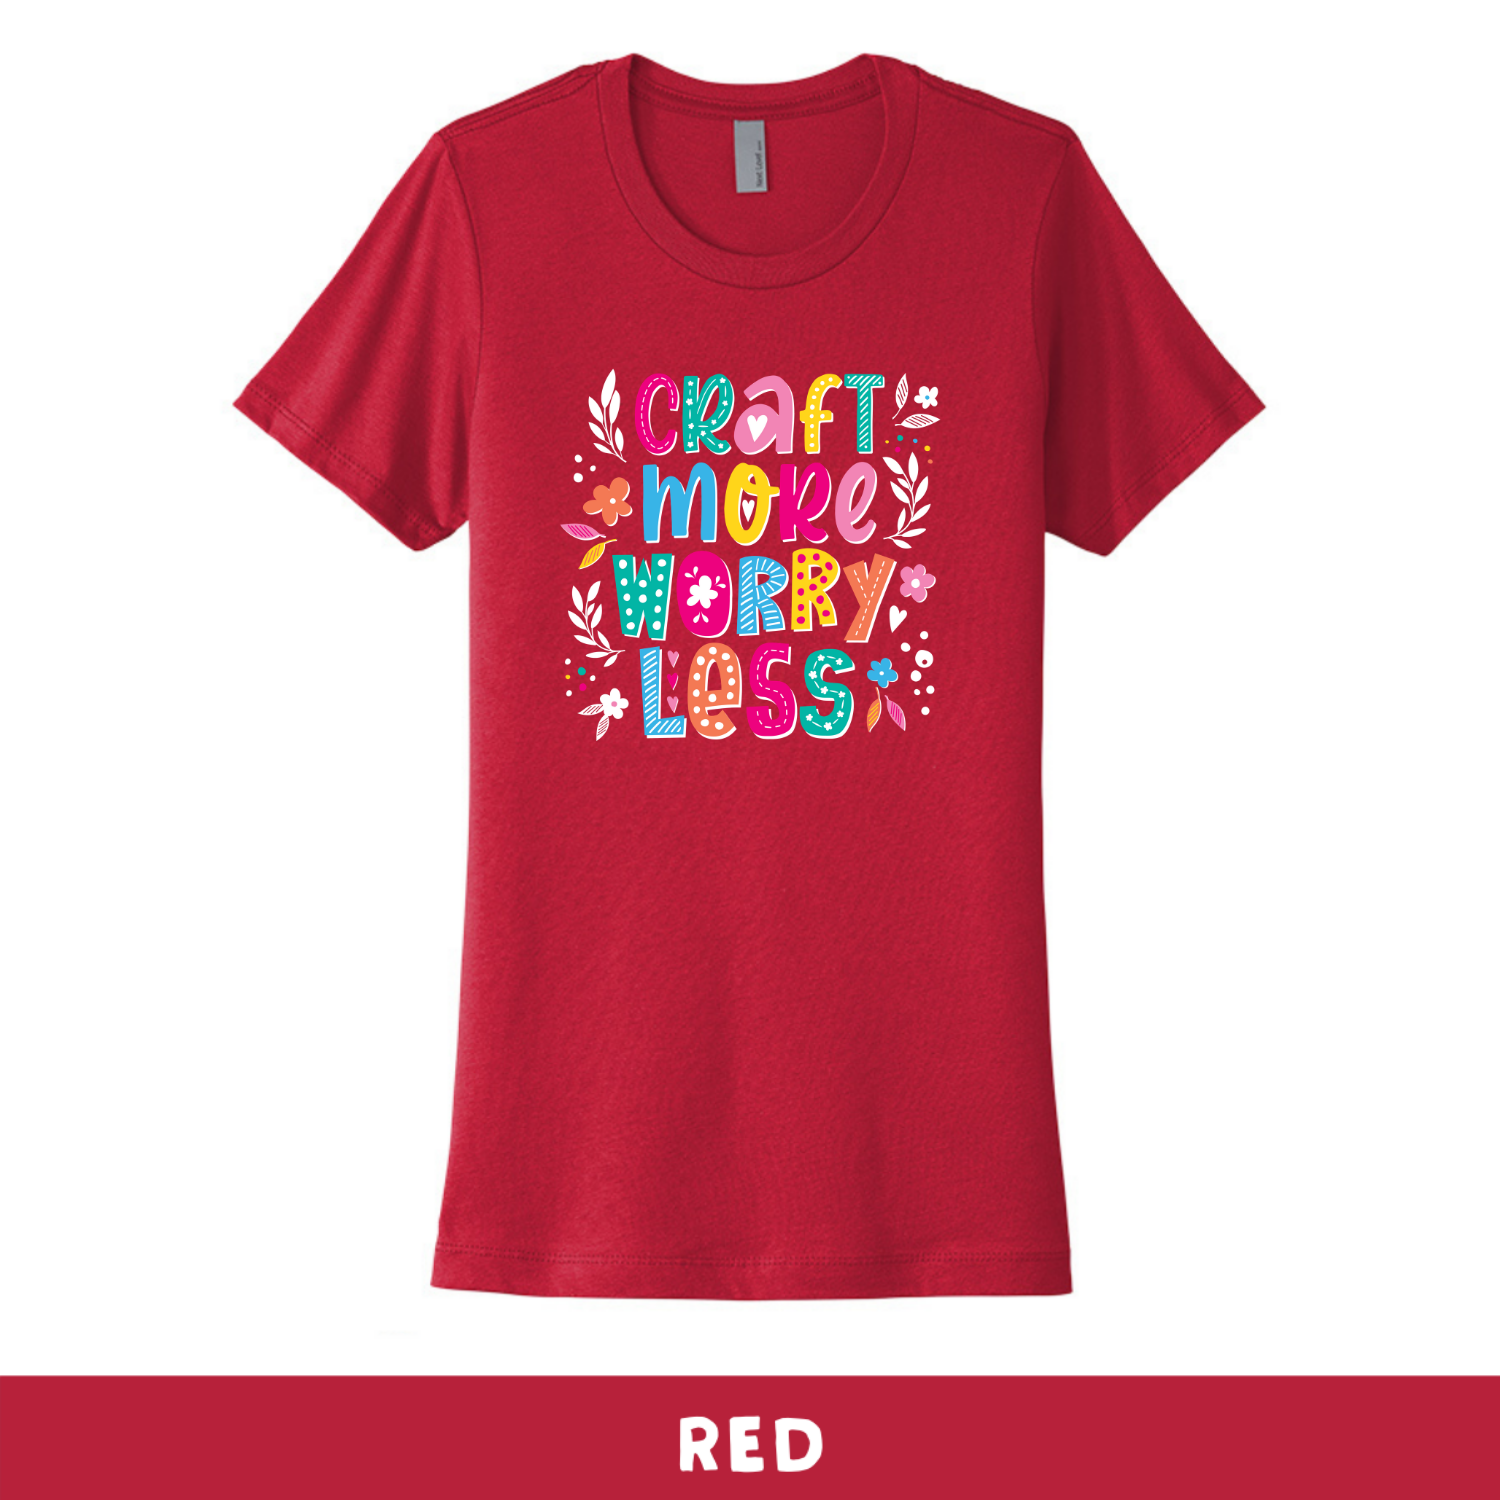 Red - Crew Neck Boyfriend Tee - Craft More Worry Less